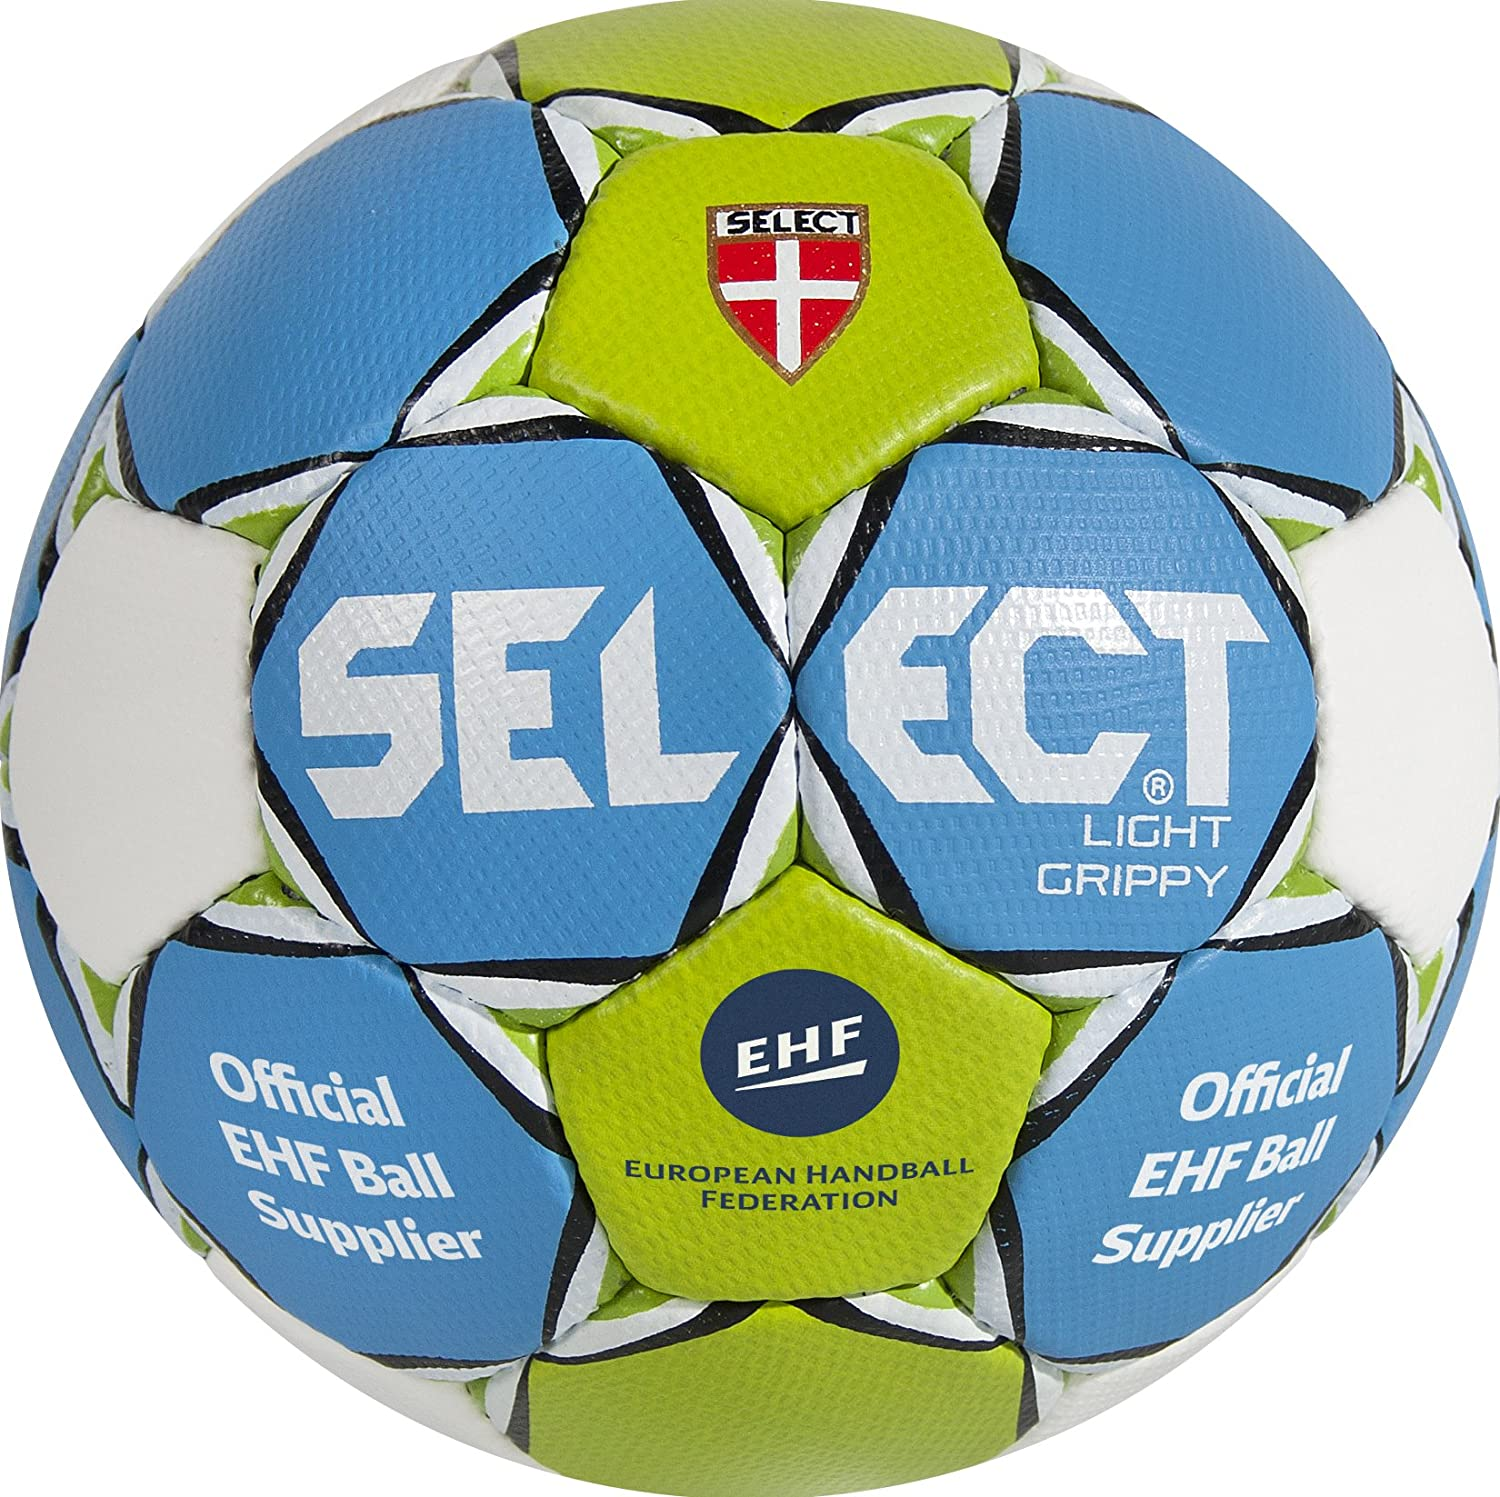 Select Ballon Light Grippy Bleu/Vert/Blanc